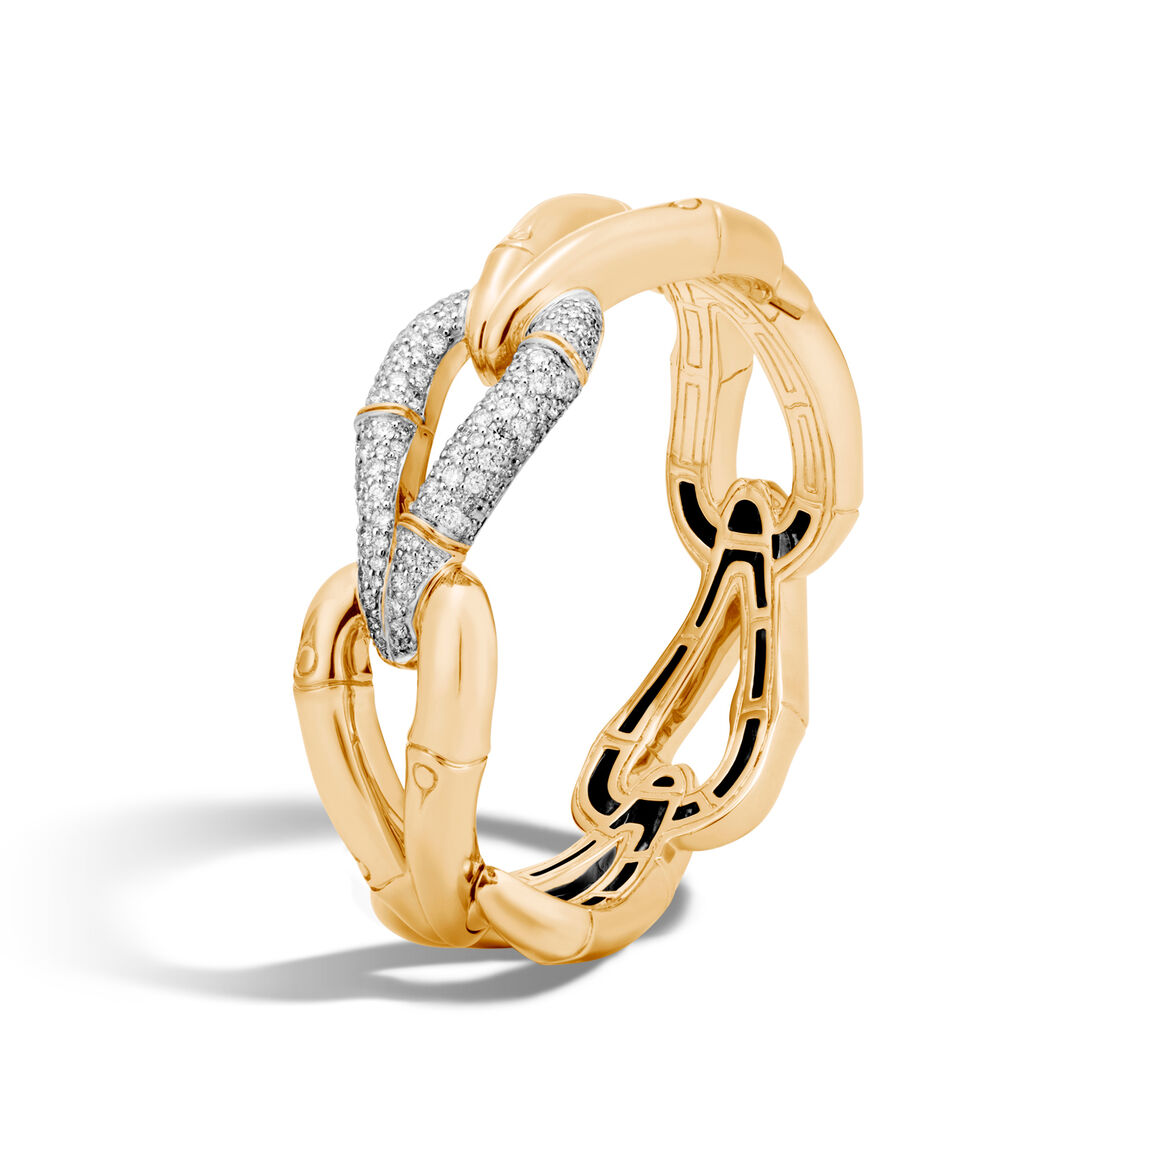 Bamboo 23MM Hinged Bangle in 18K Gold with Diamonds